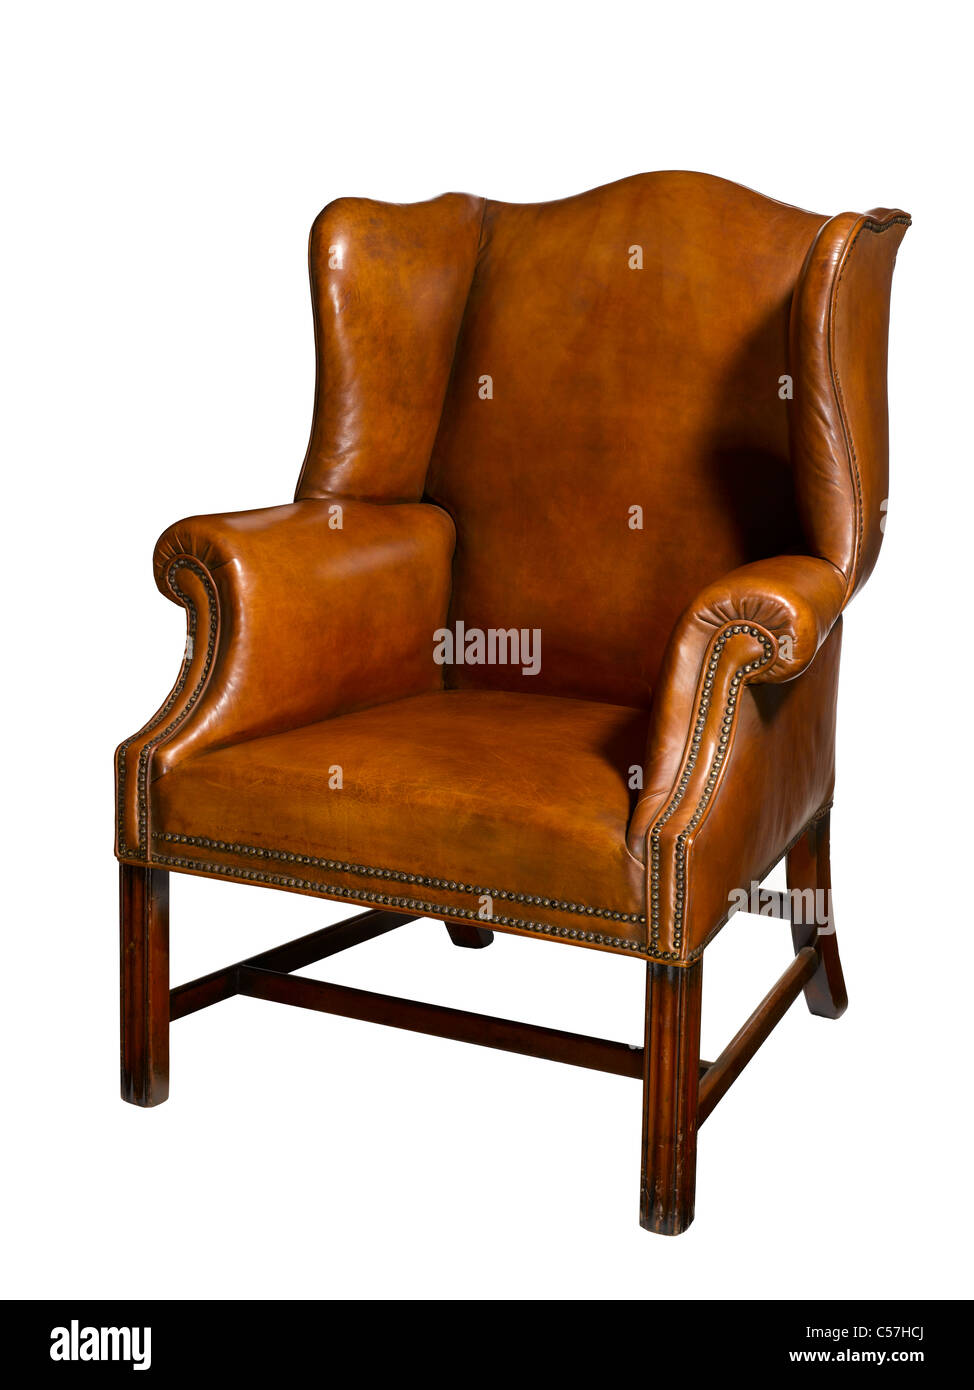 An Old Leather Chair   Stock Image